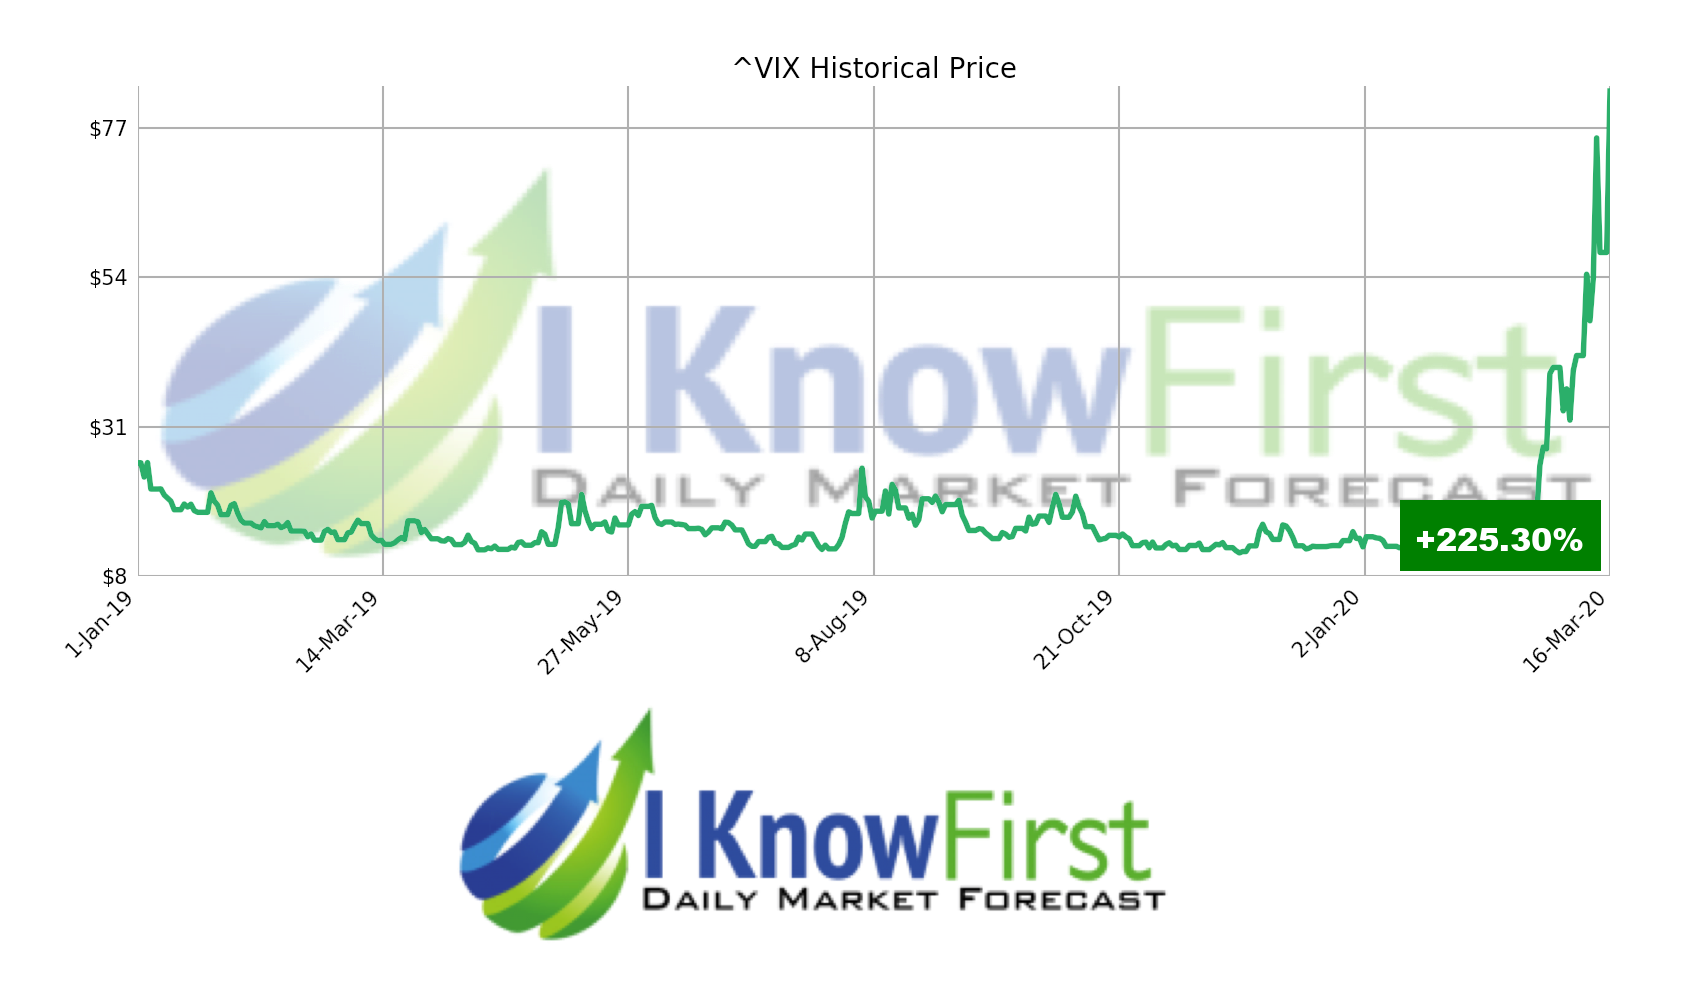 VIX-1-Jan-19-16-Mar-20